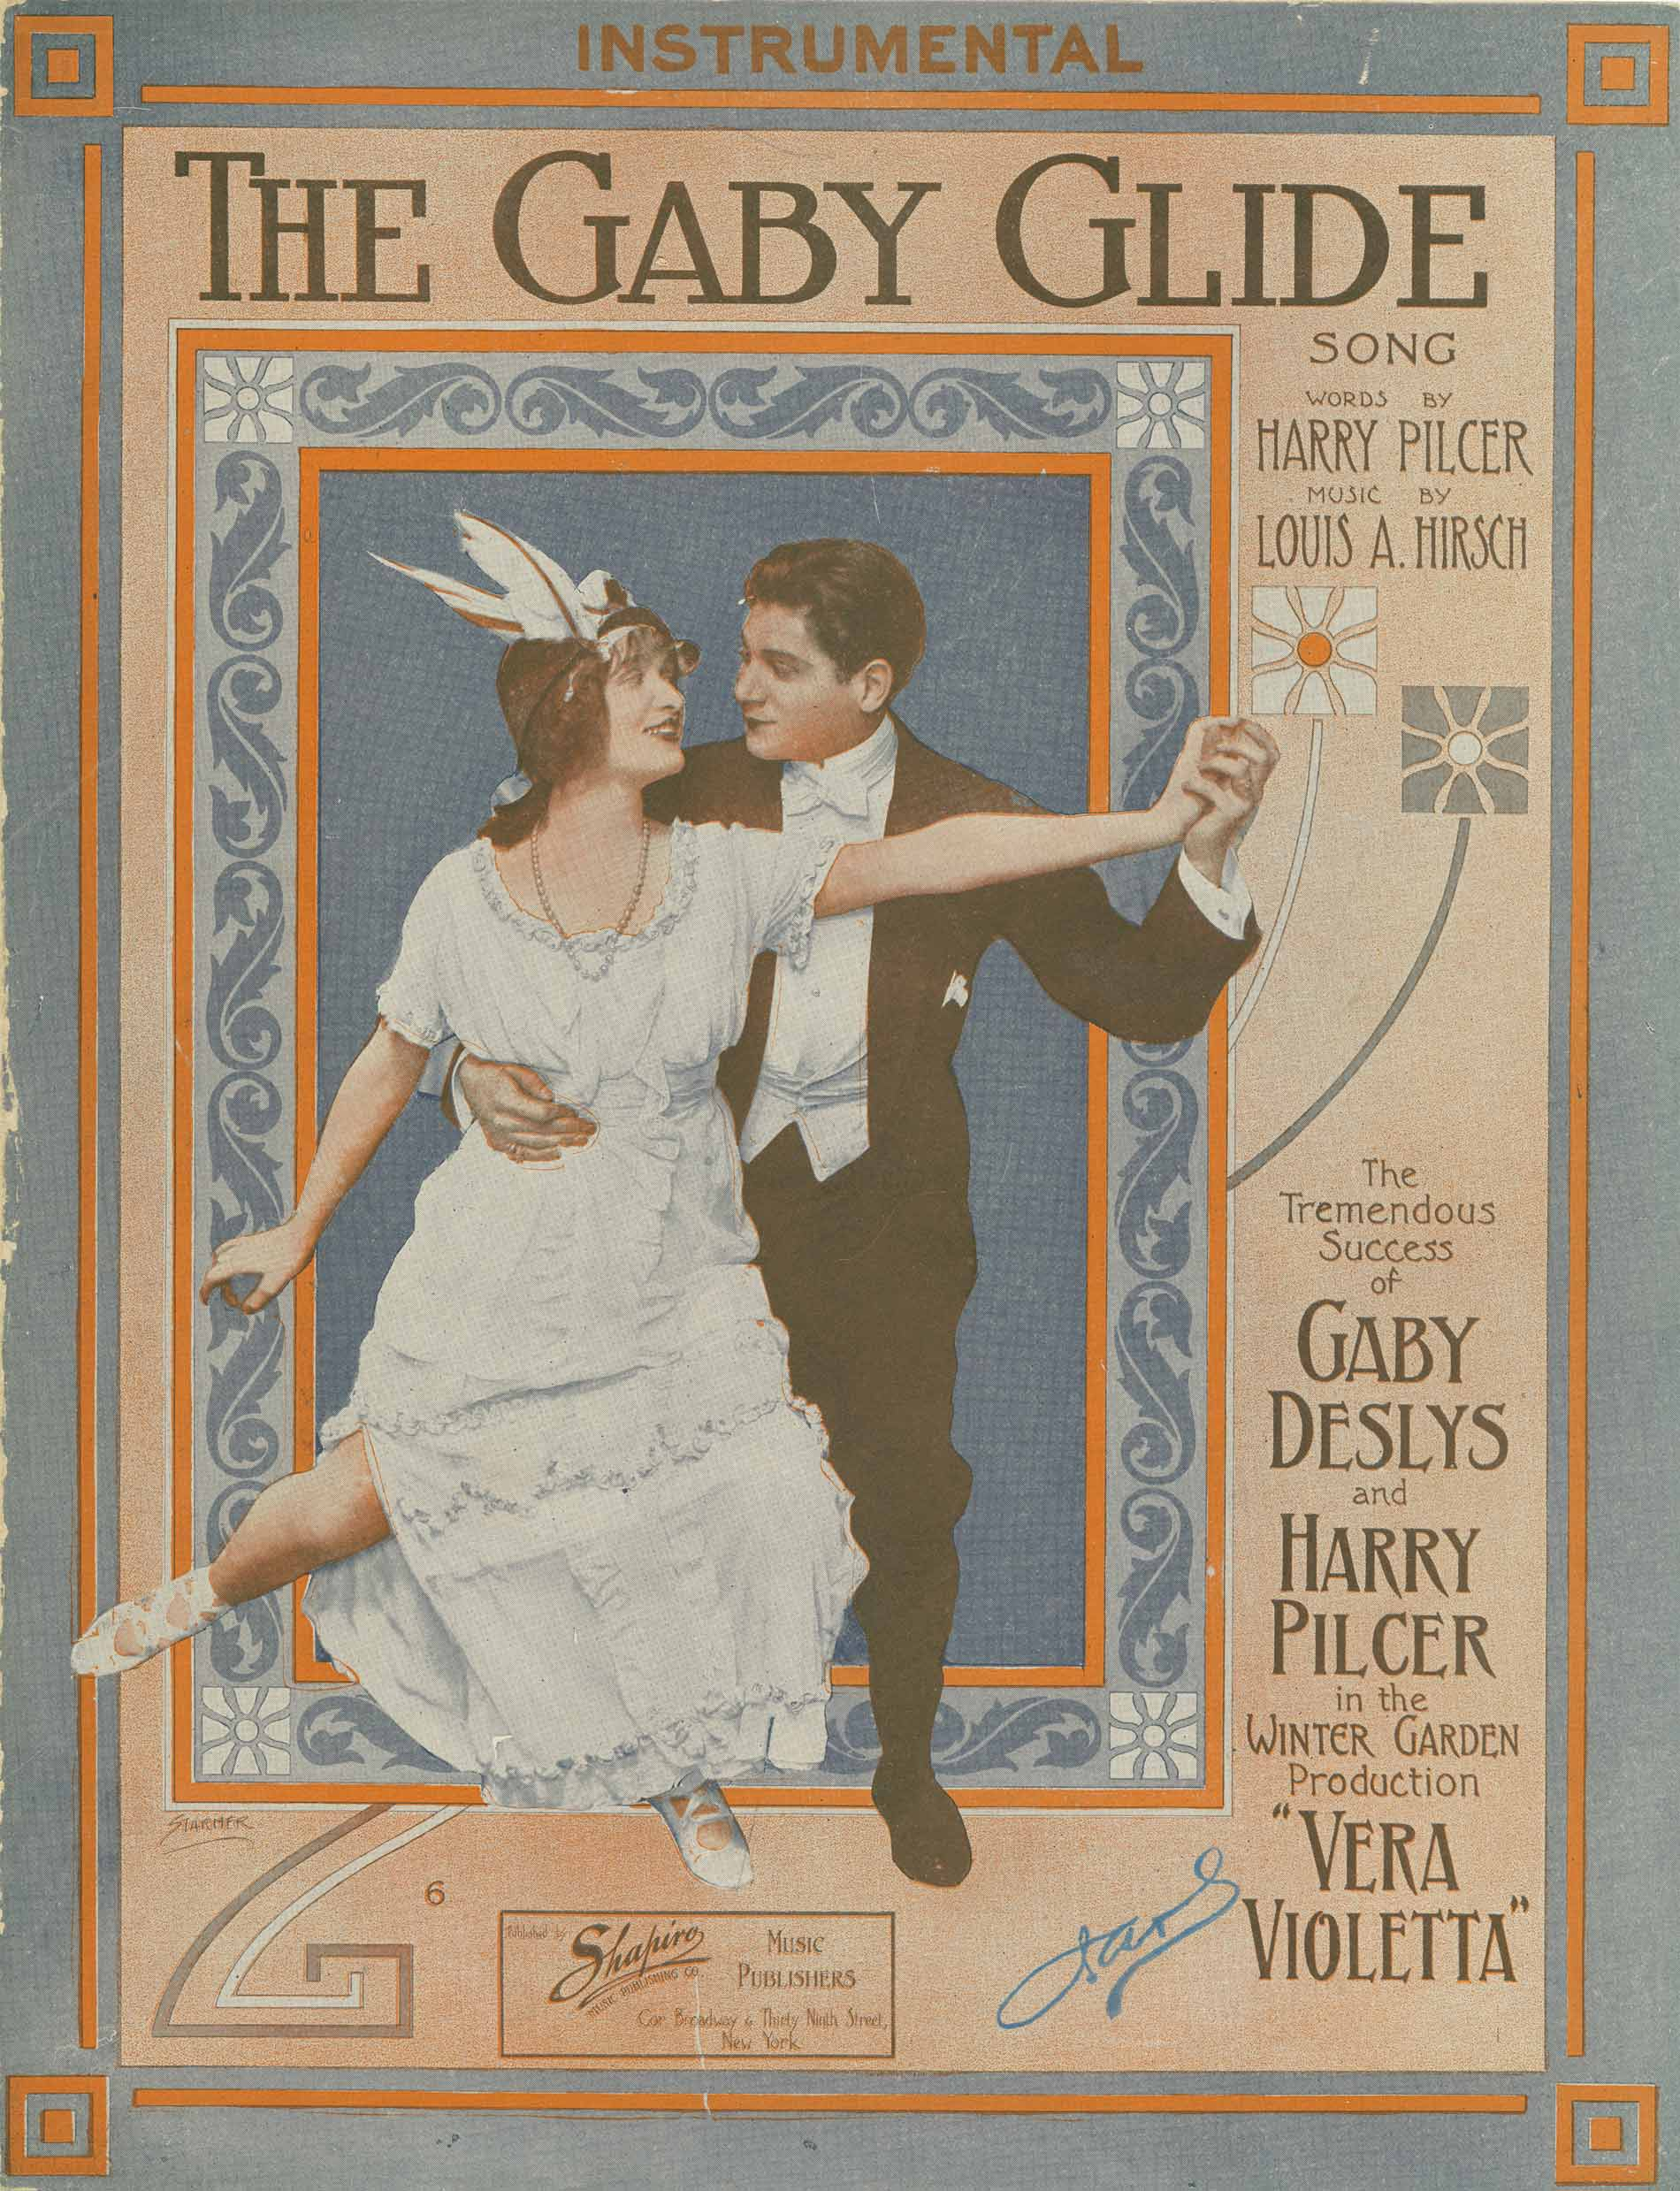 Hirsch L Deslys Gaby  Pilcher Harry 1912 The Gaby glide Louis A Hirsch New York Shapiro Music